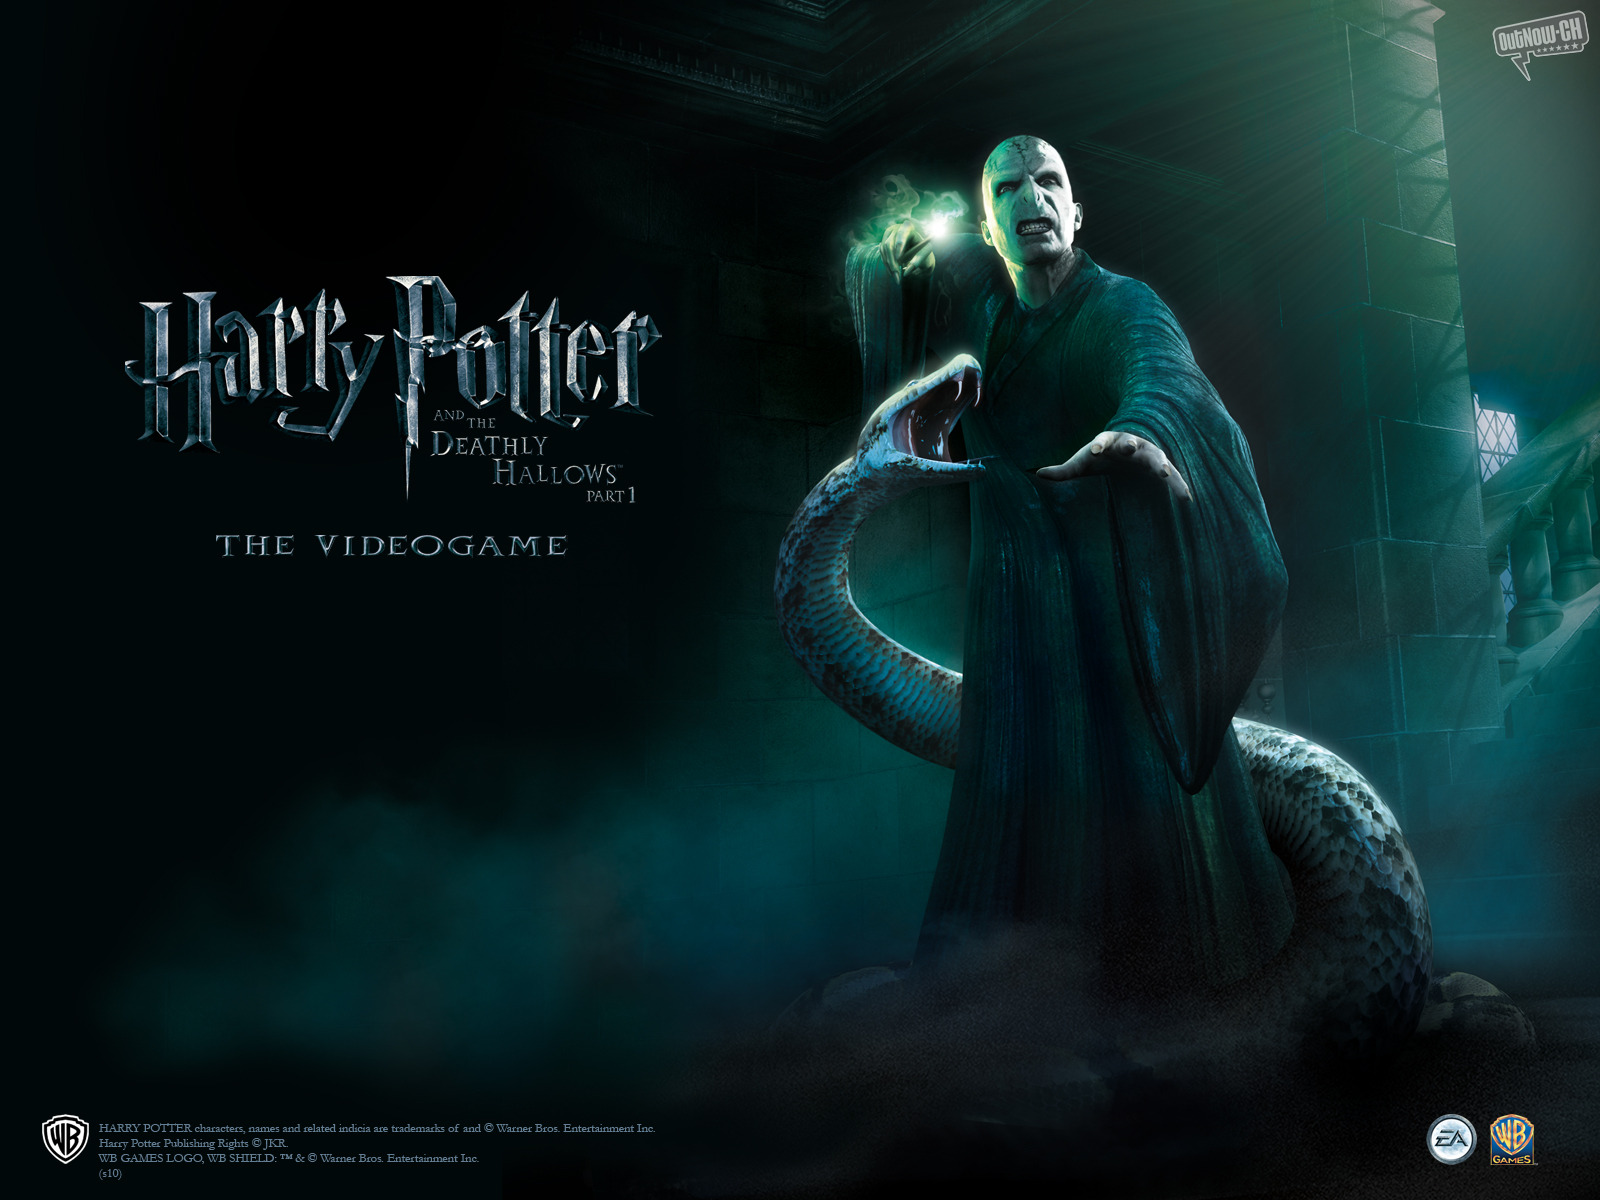 Download Wallpaper Harry Potter Logo - harry-potter%3A-deathly-hallows_wallpapers_26322_1600x1200  You Should Have_989167.jpg